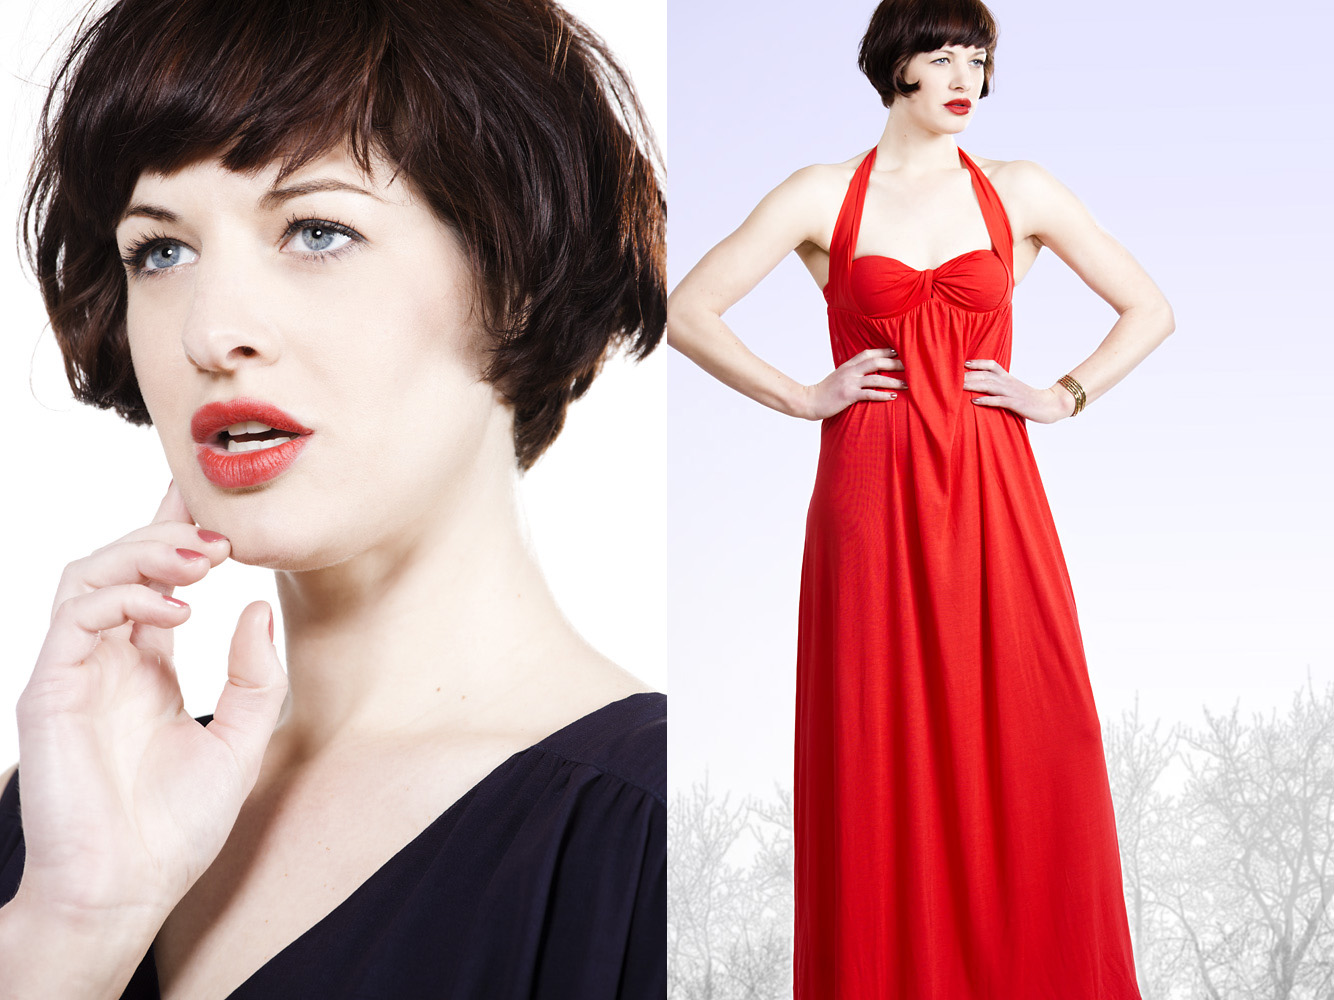 Photo by Margaret Yescombe, Advertising photographer london, studio photo-shoot, pale model, dark short hair, red lipstick, red dress